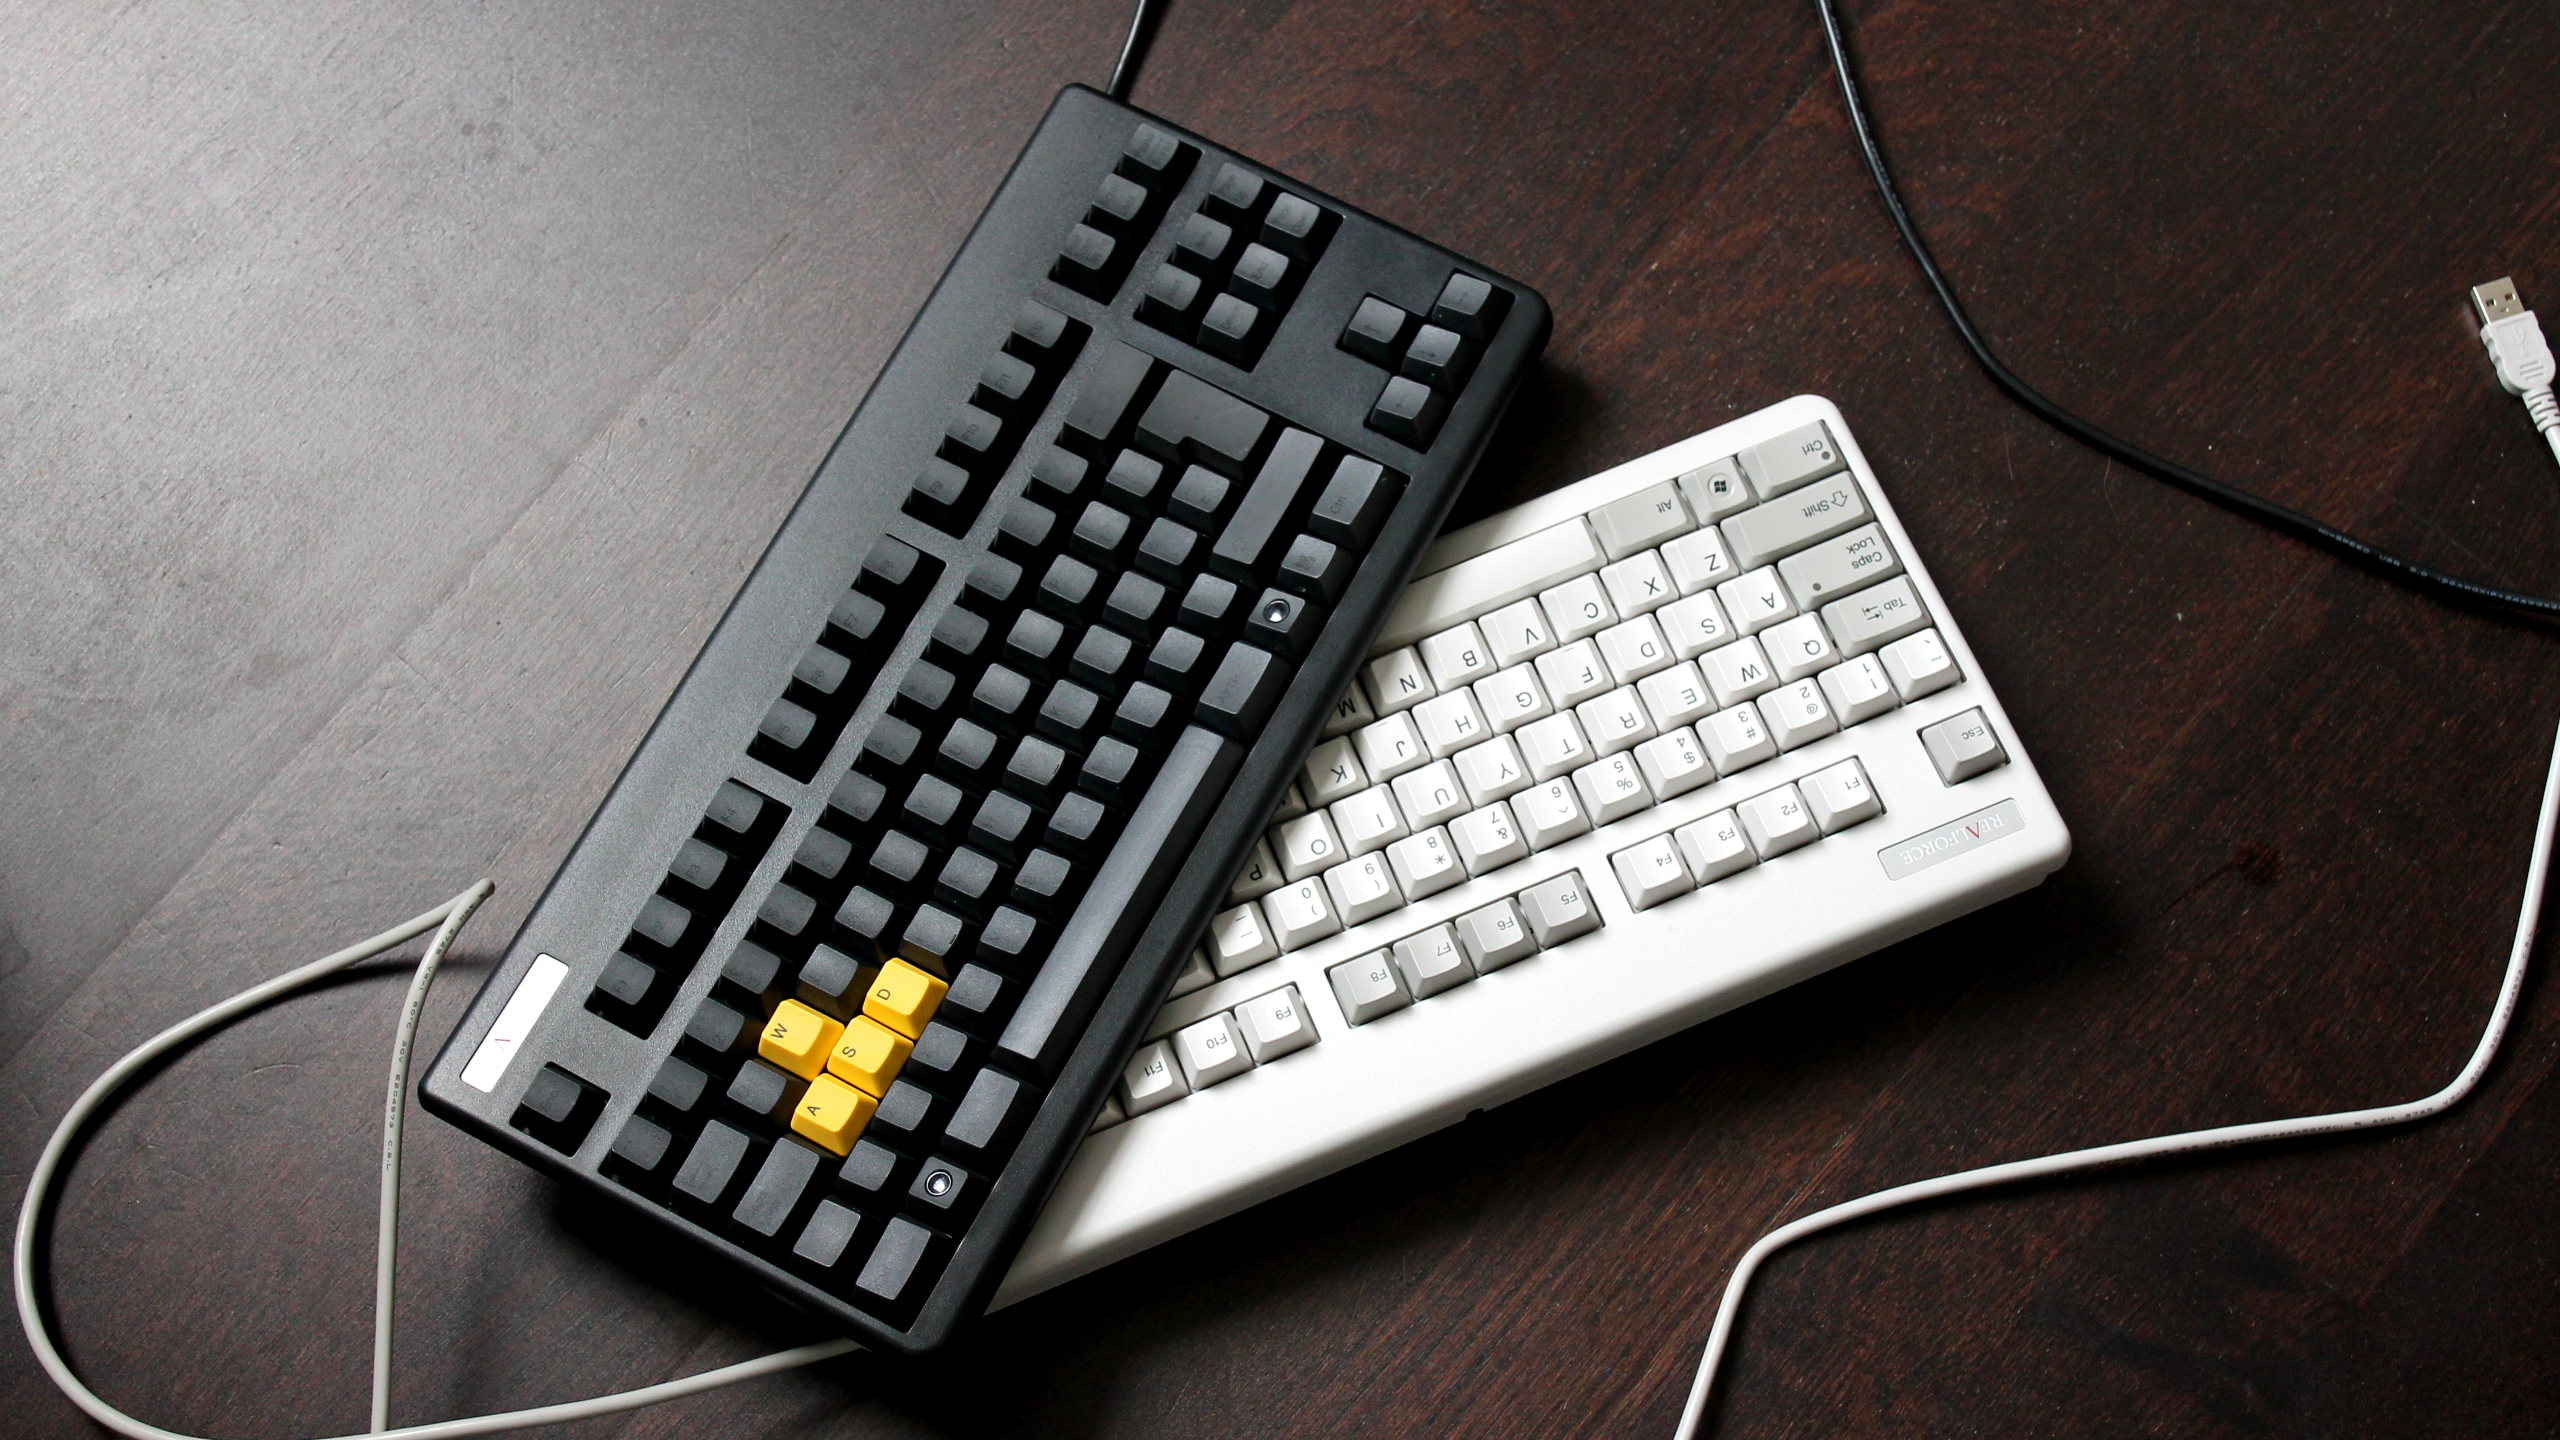 Best keyboards 2019: the best typing companions | TechRadar